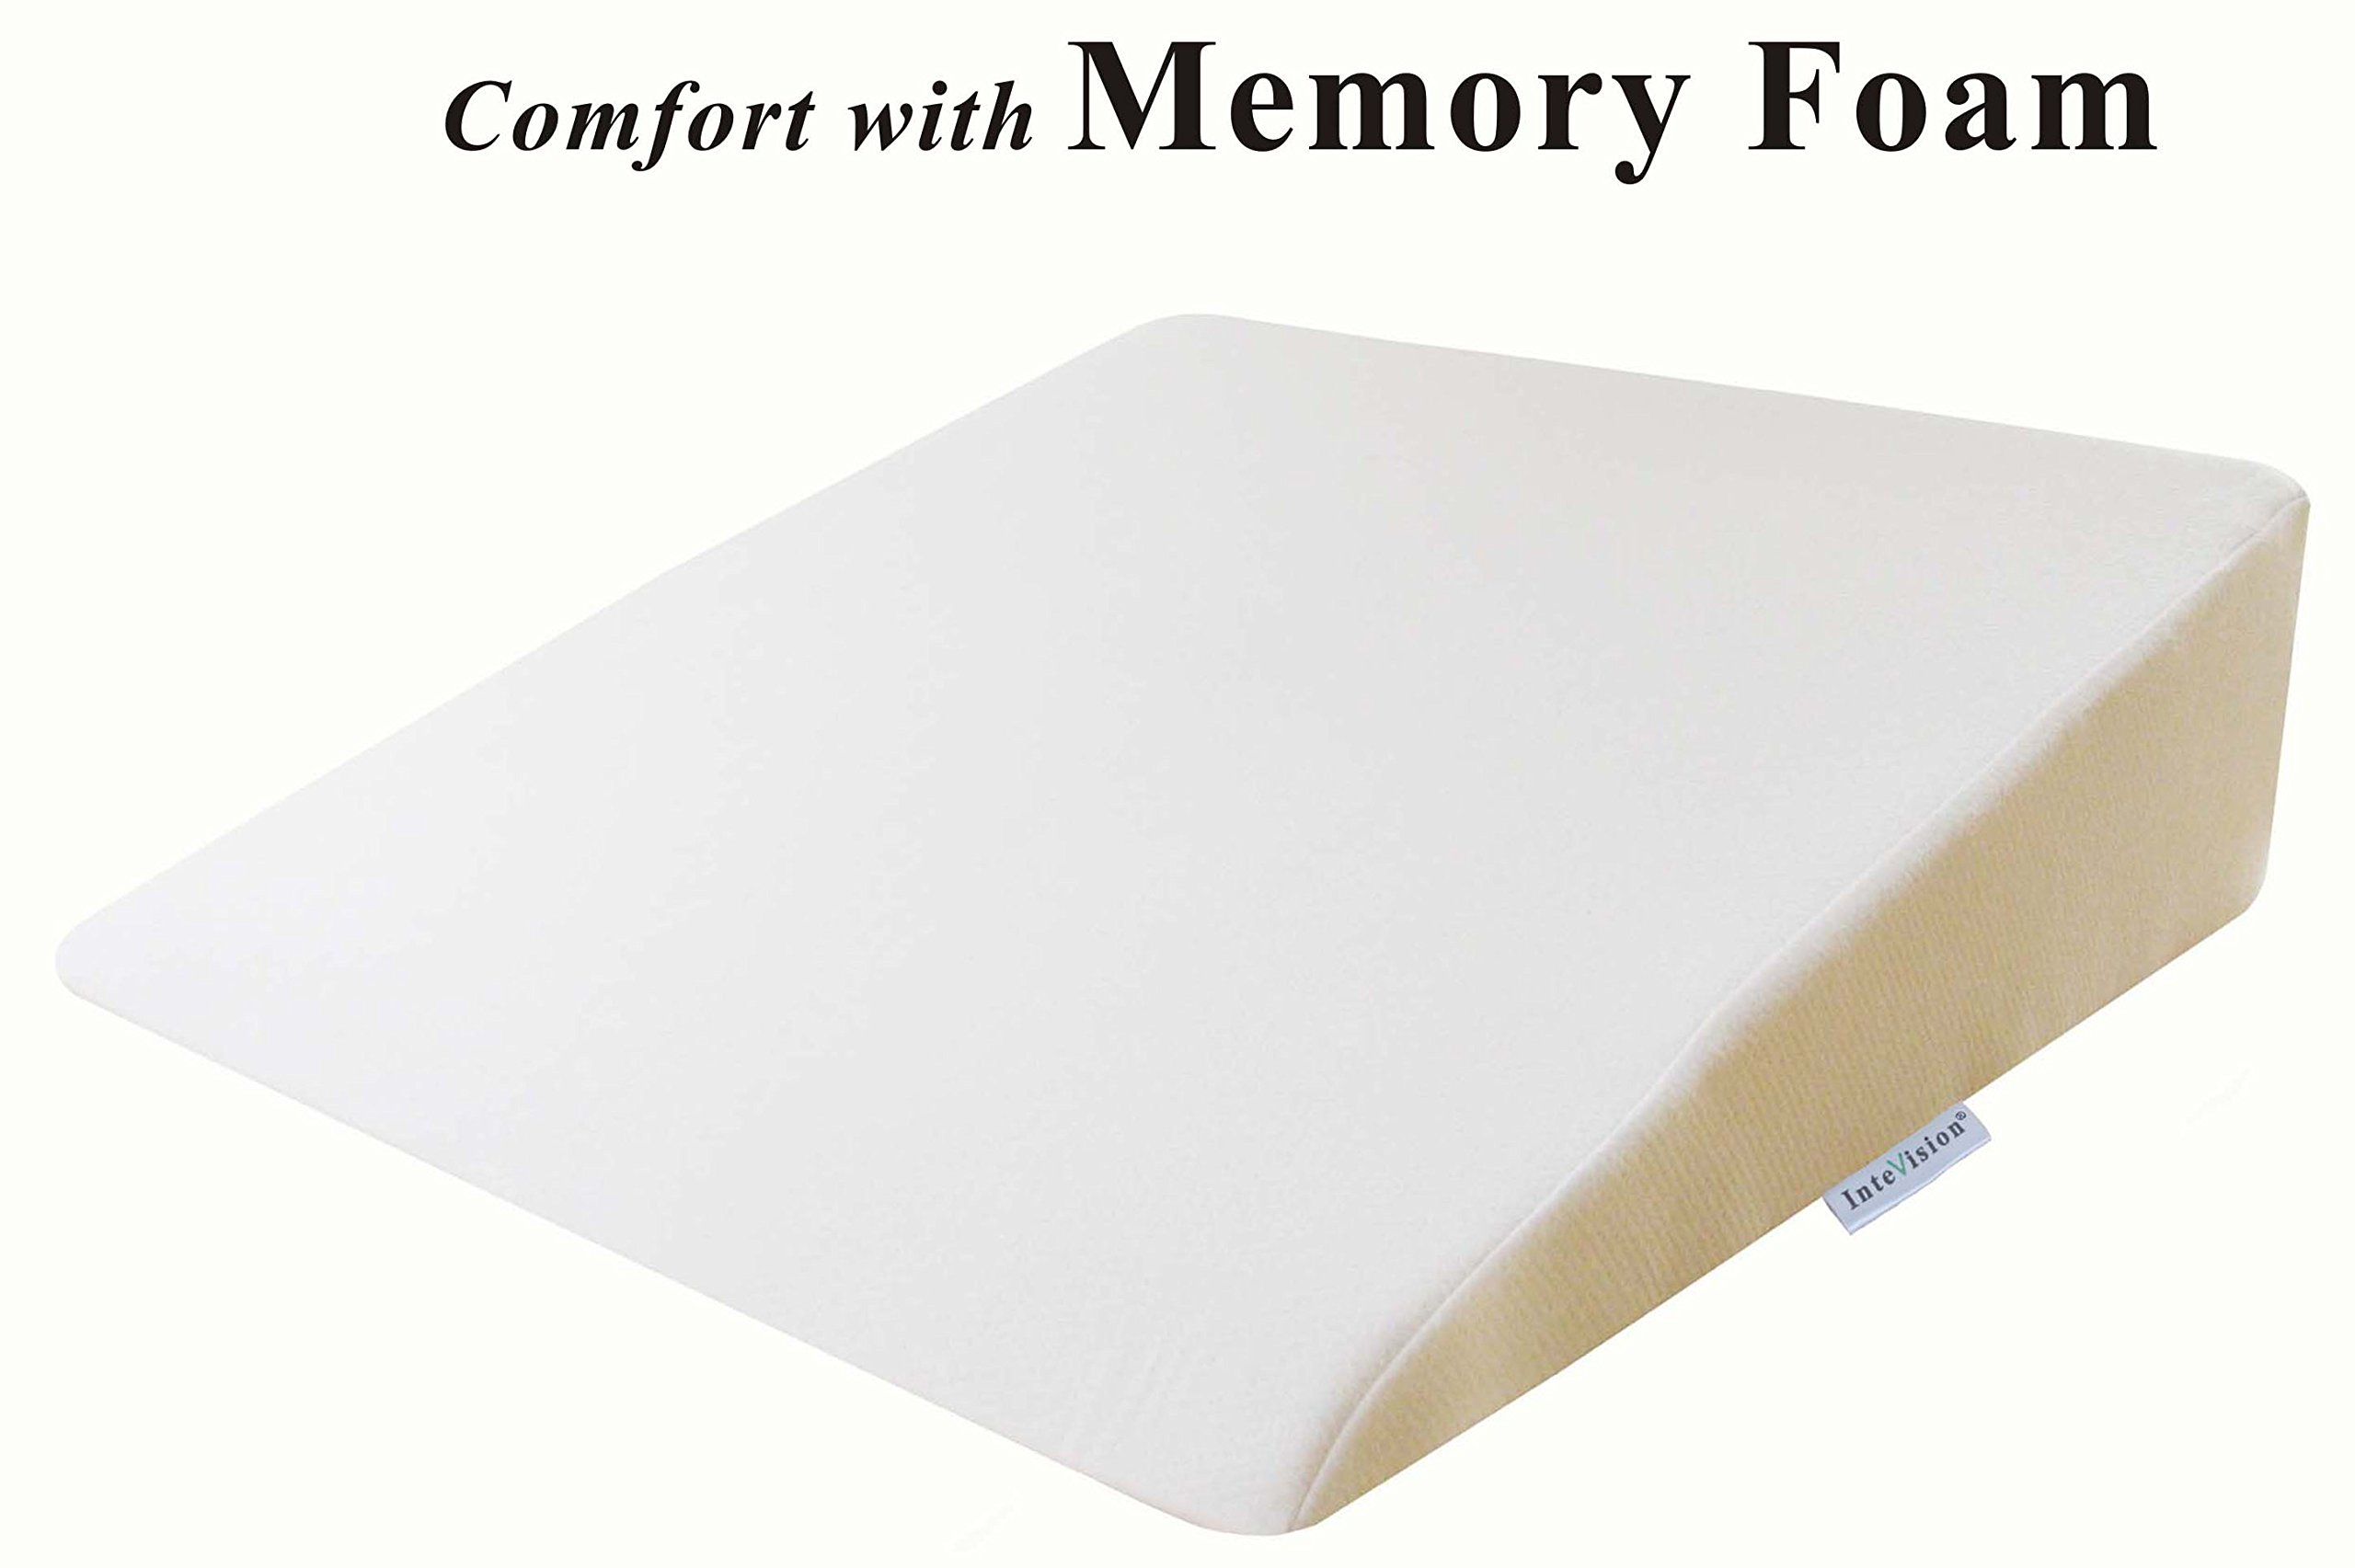 InteVision Foam Wedge Bed Pillow (26'' x 25'' x 7.5'') with High Quality, Removable Cover